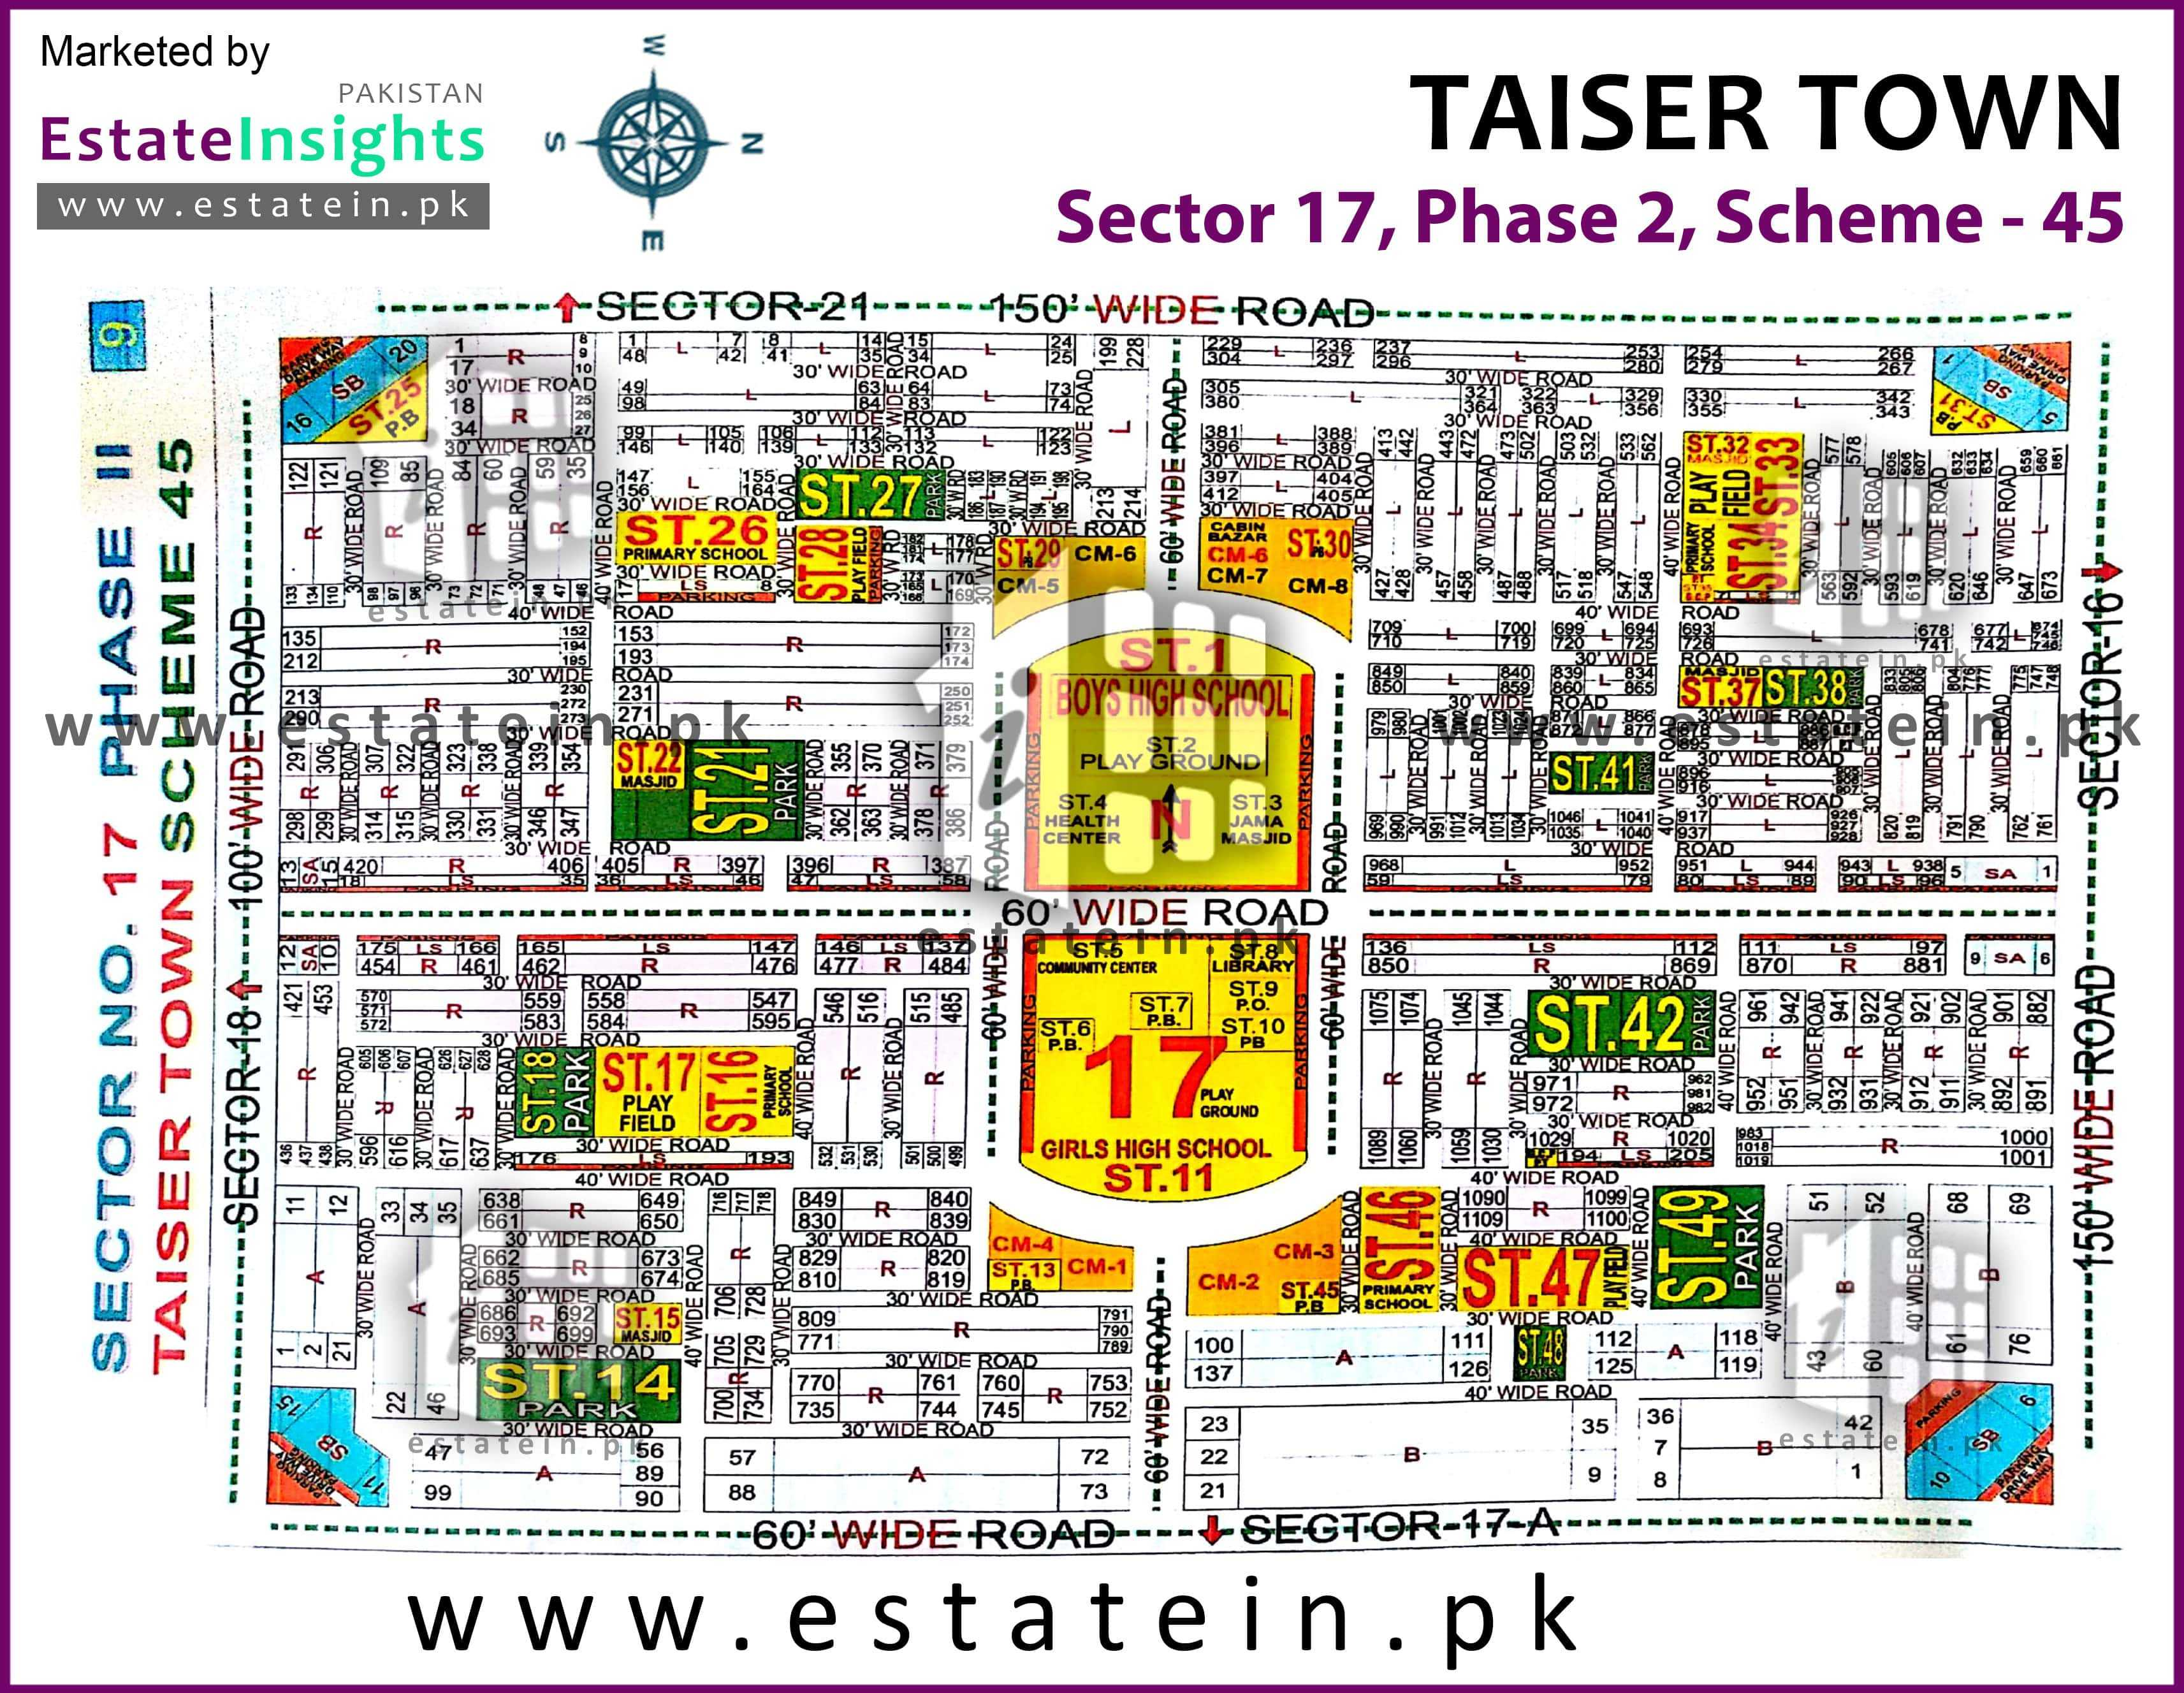 Site Plan of Sector 17 of Taiser Town Phase II